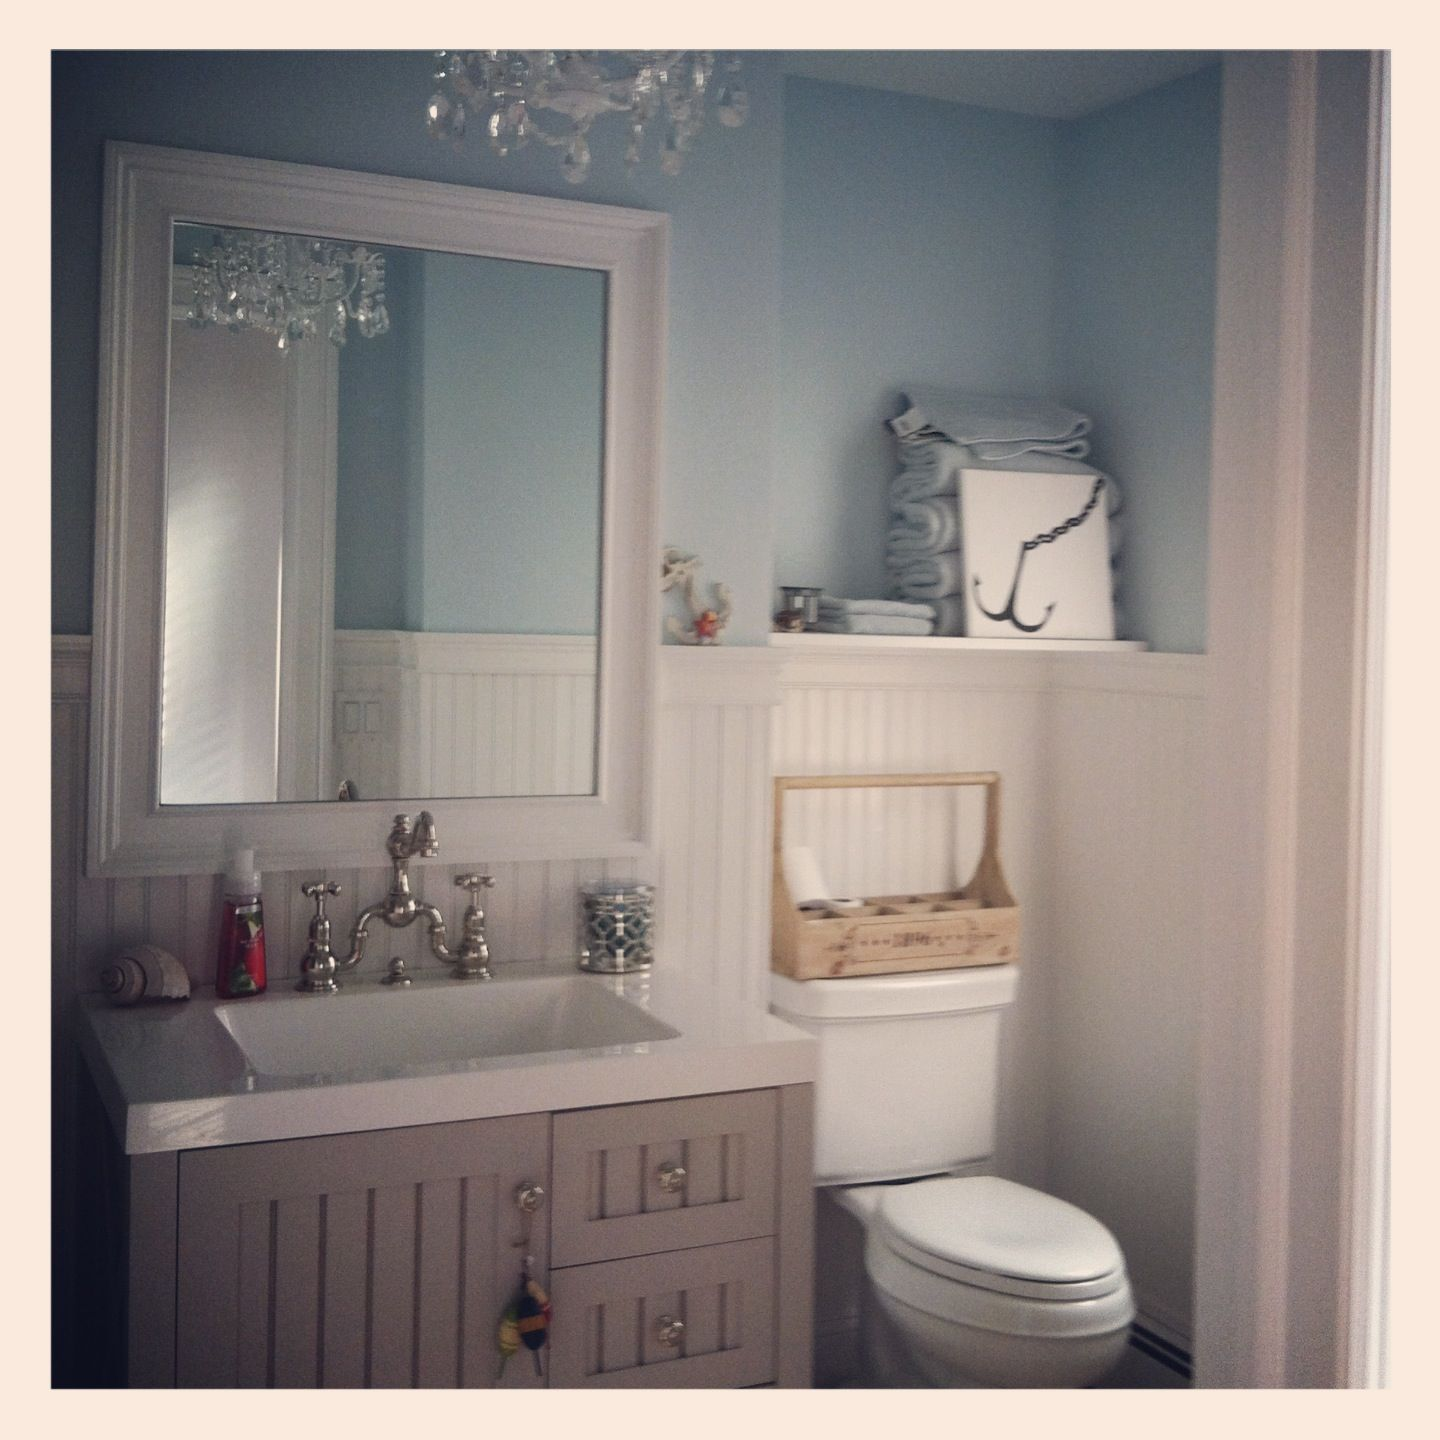 My Hanptons Beach Cottage Bathroom #beach #decor #cottagestyle